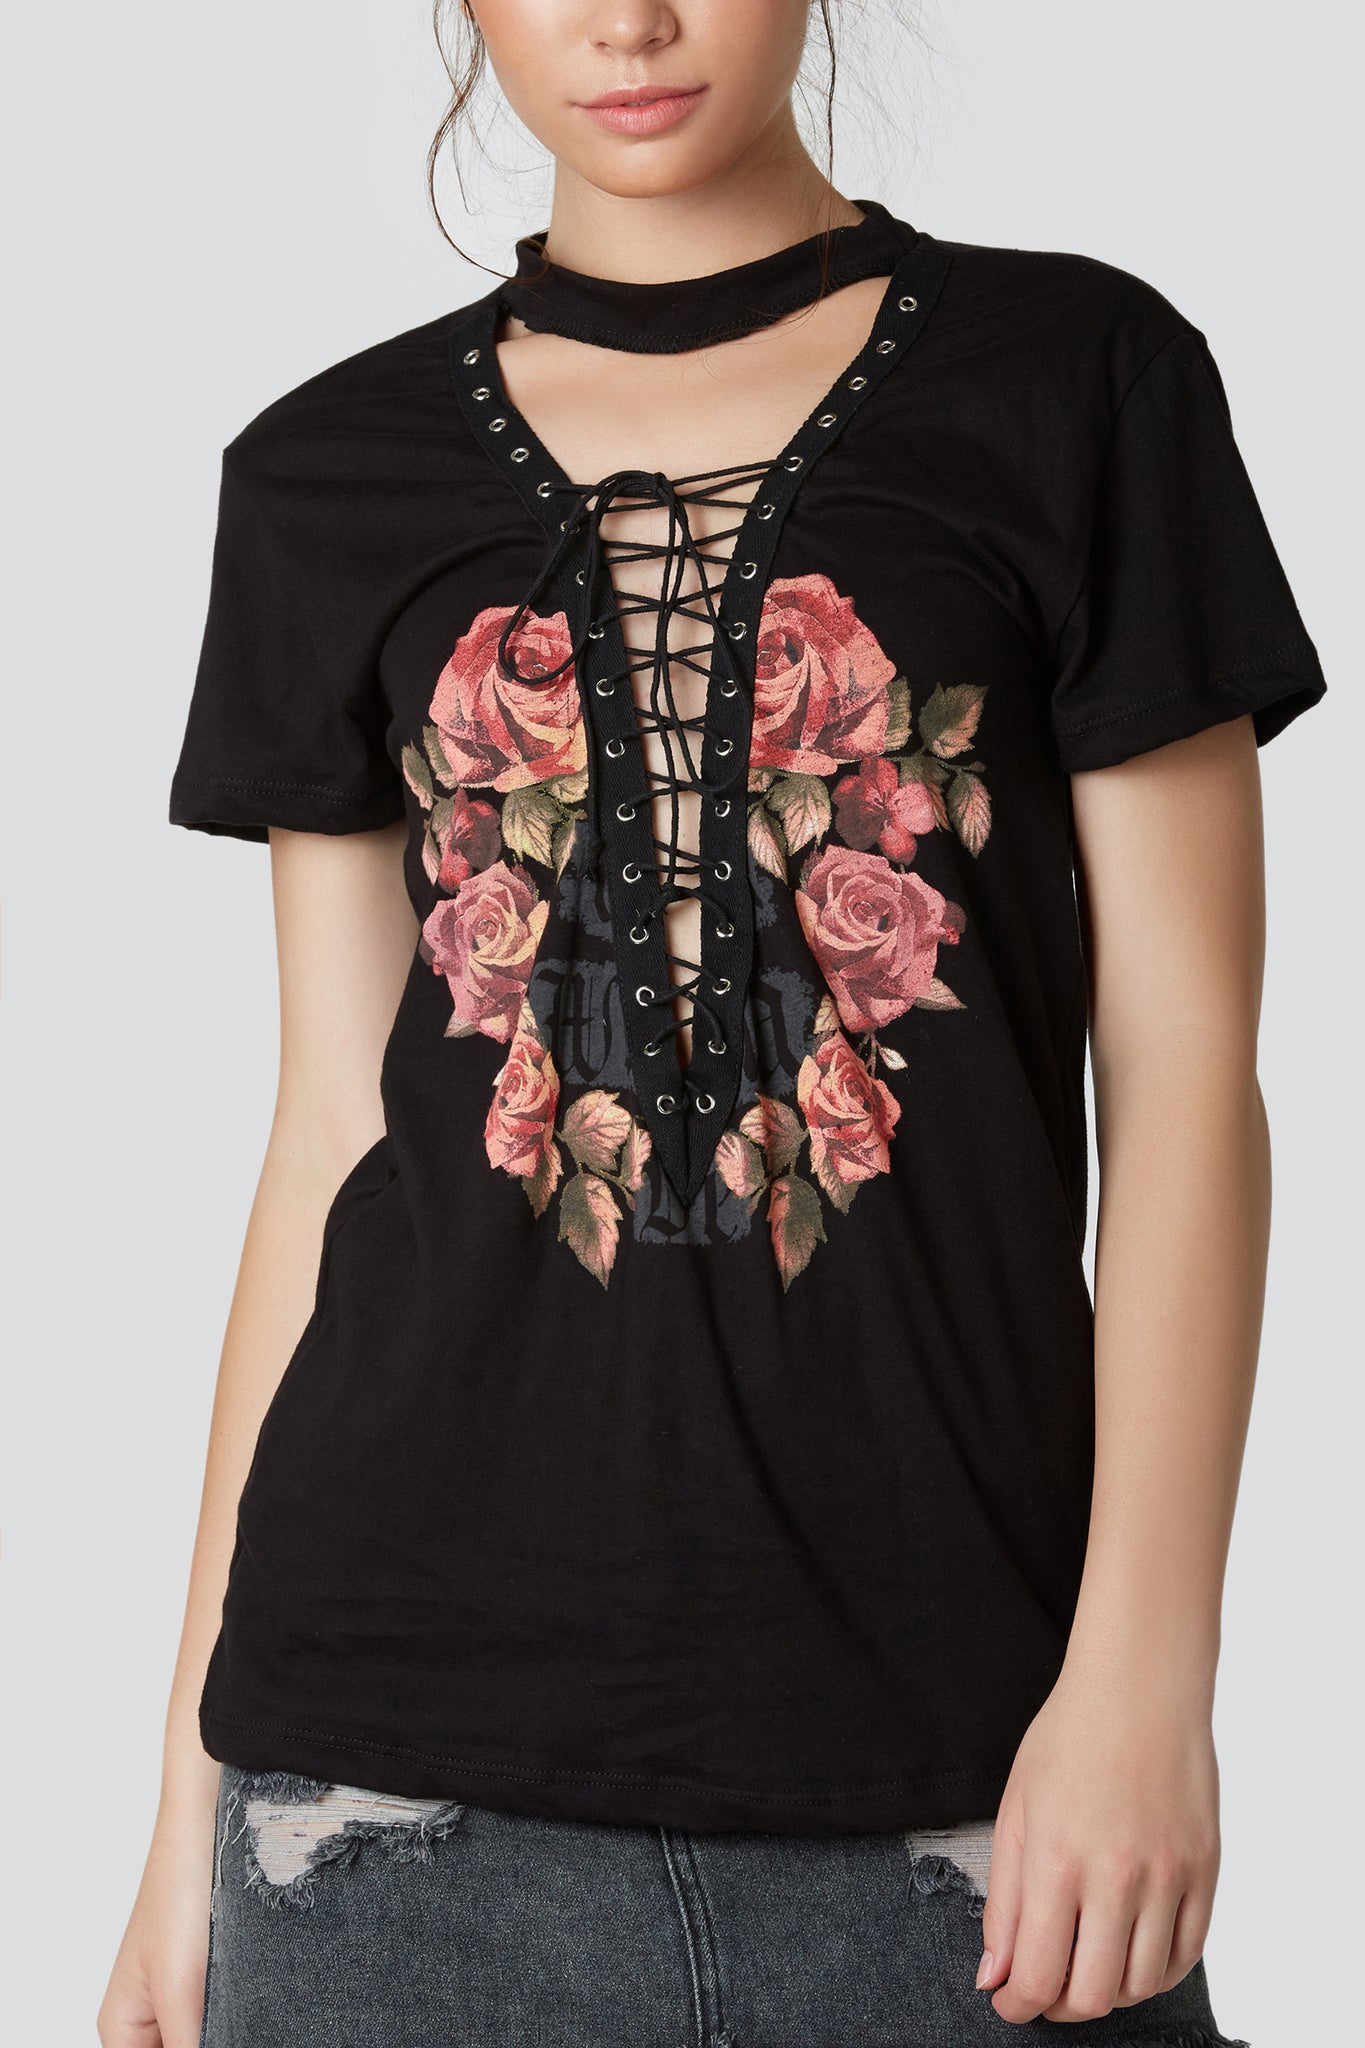 Trendy graphic T-shirt with plunging V-neckline with lace up design. Bold rose print in front with choker neckline.